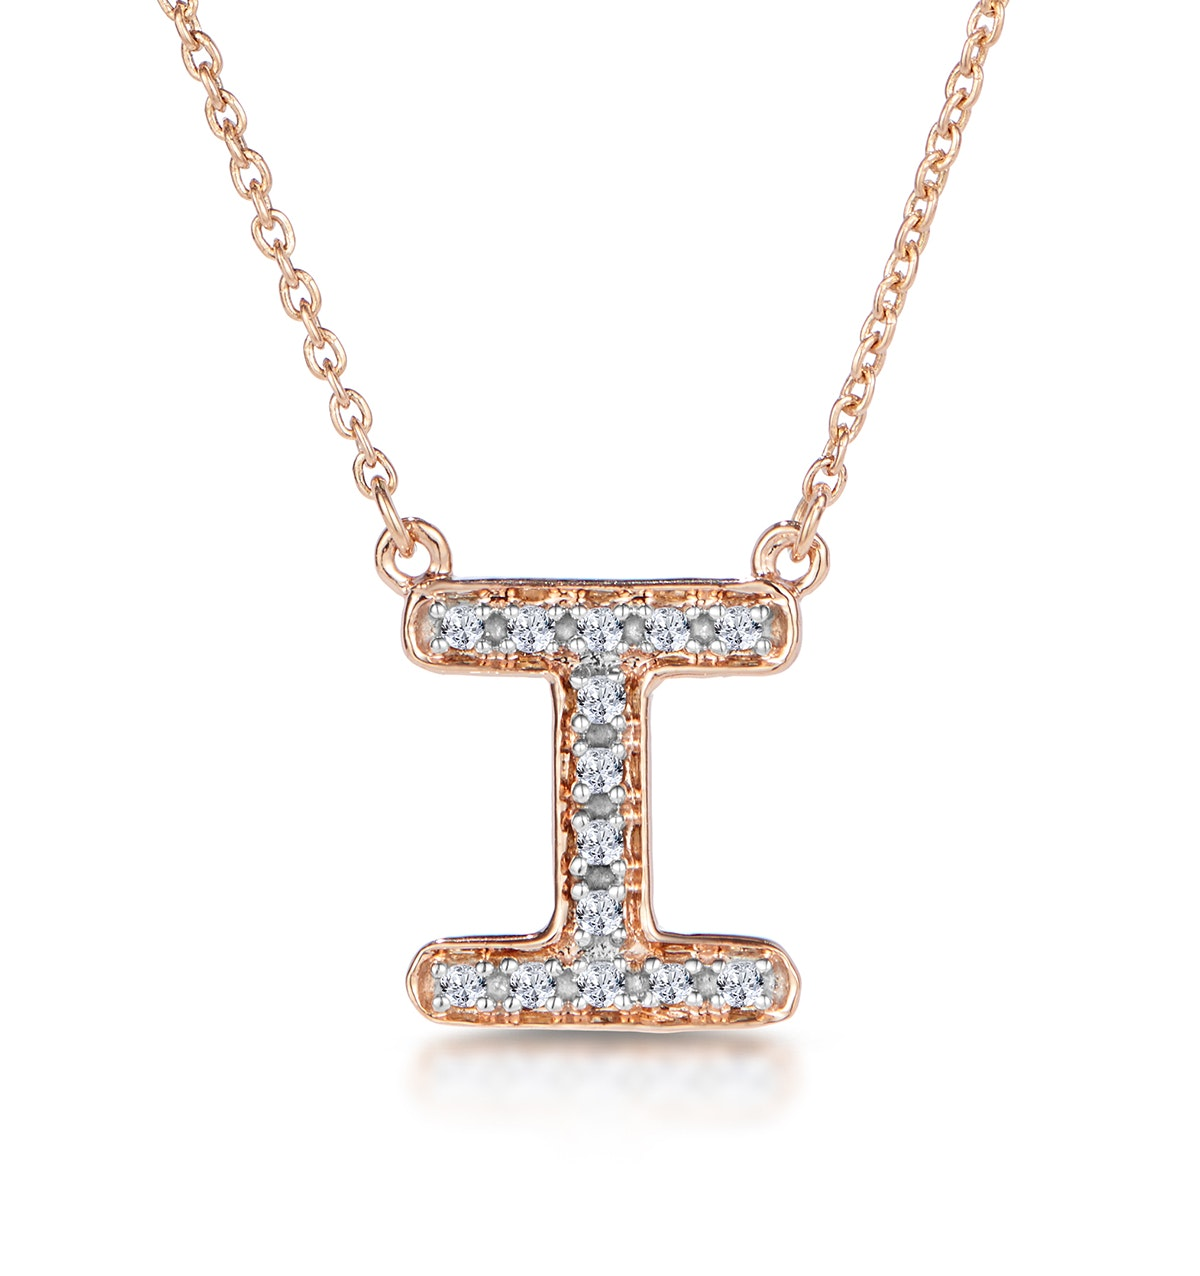 Initial 'I' Necklace Diamond Encrusted Pave Set in 9K Rose Gold